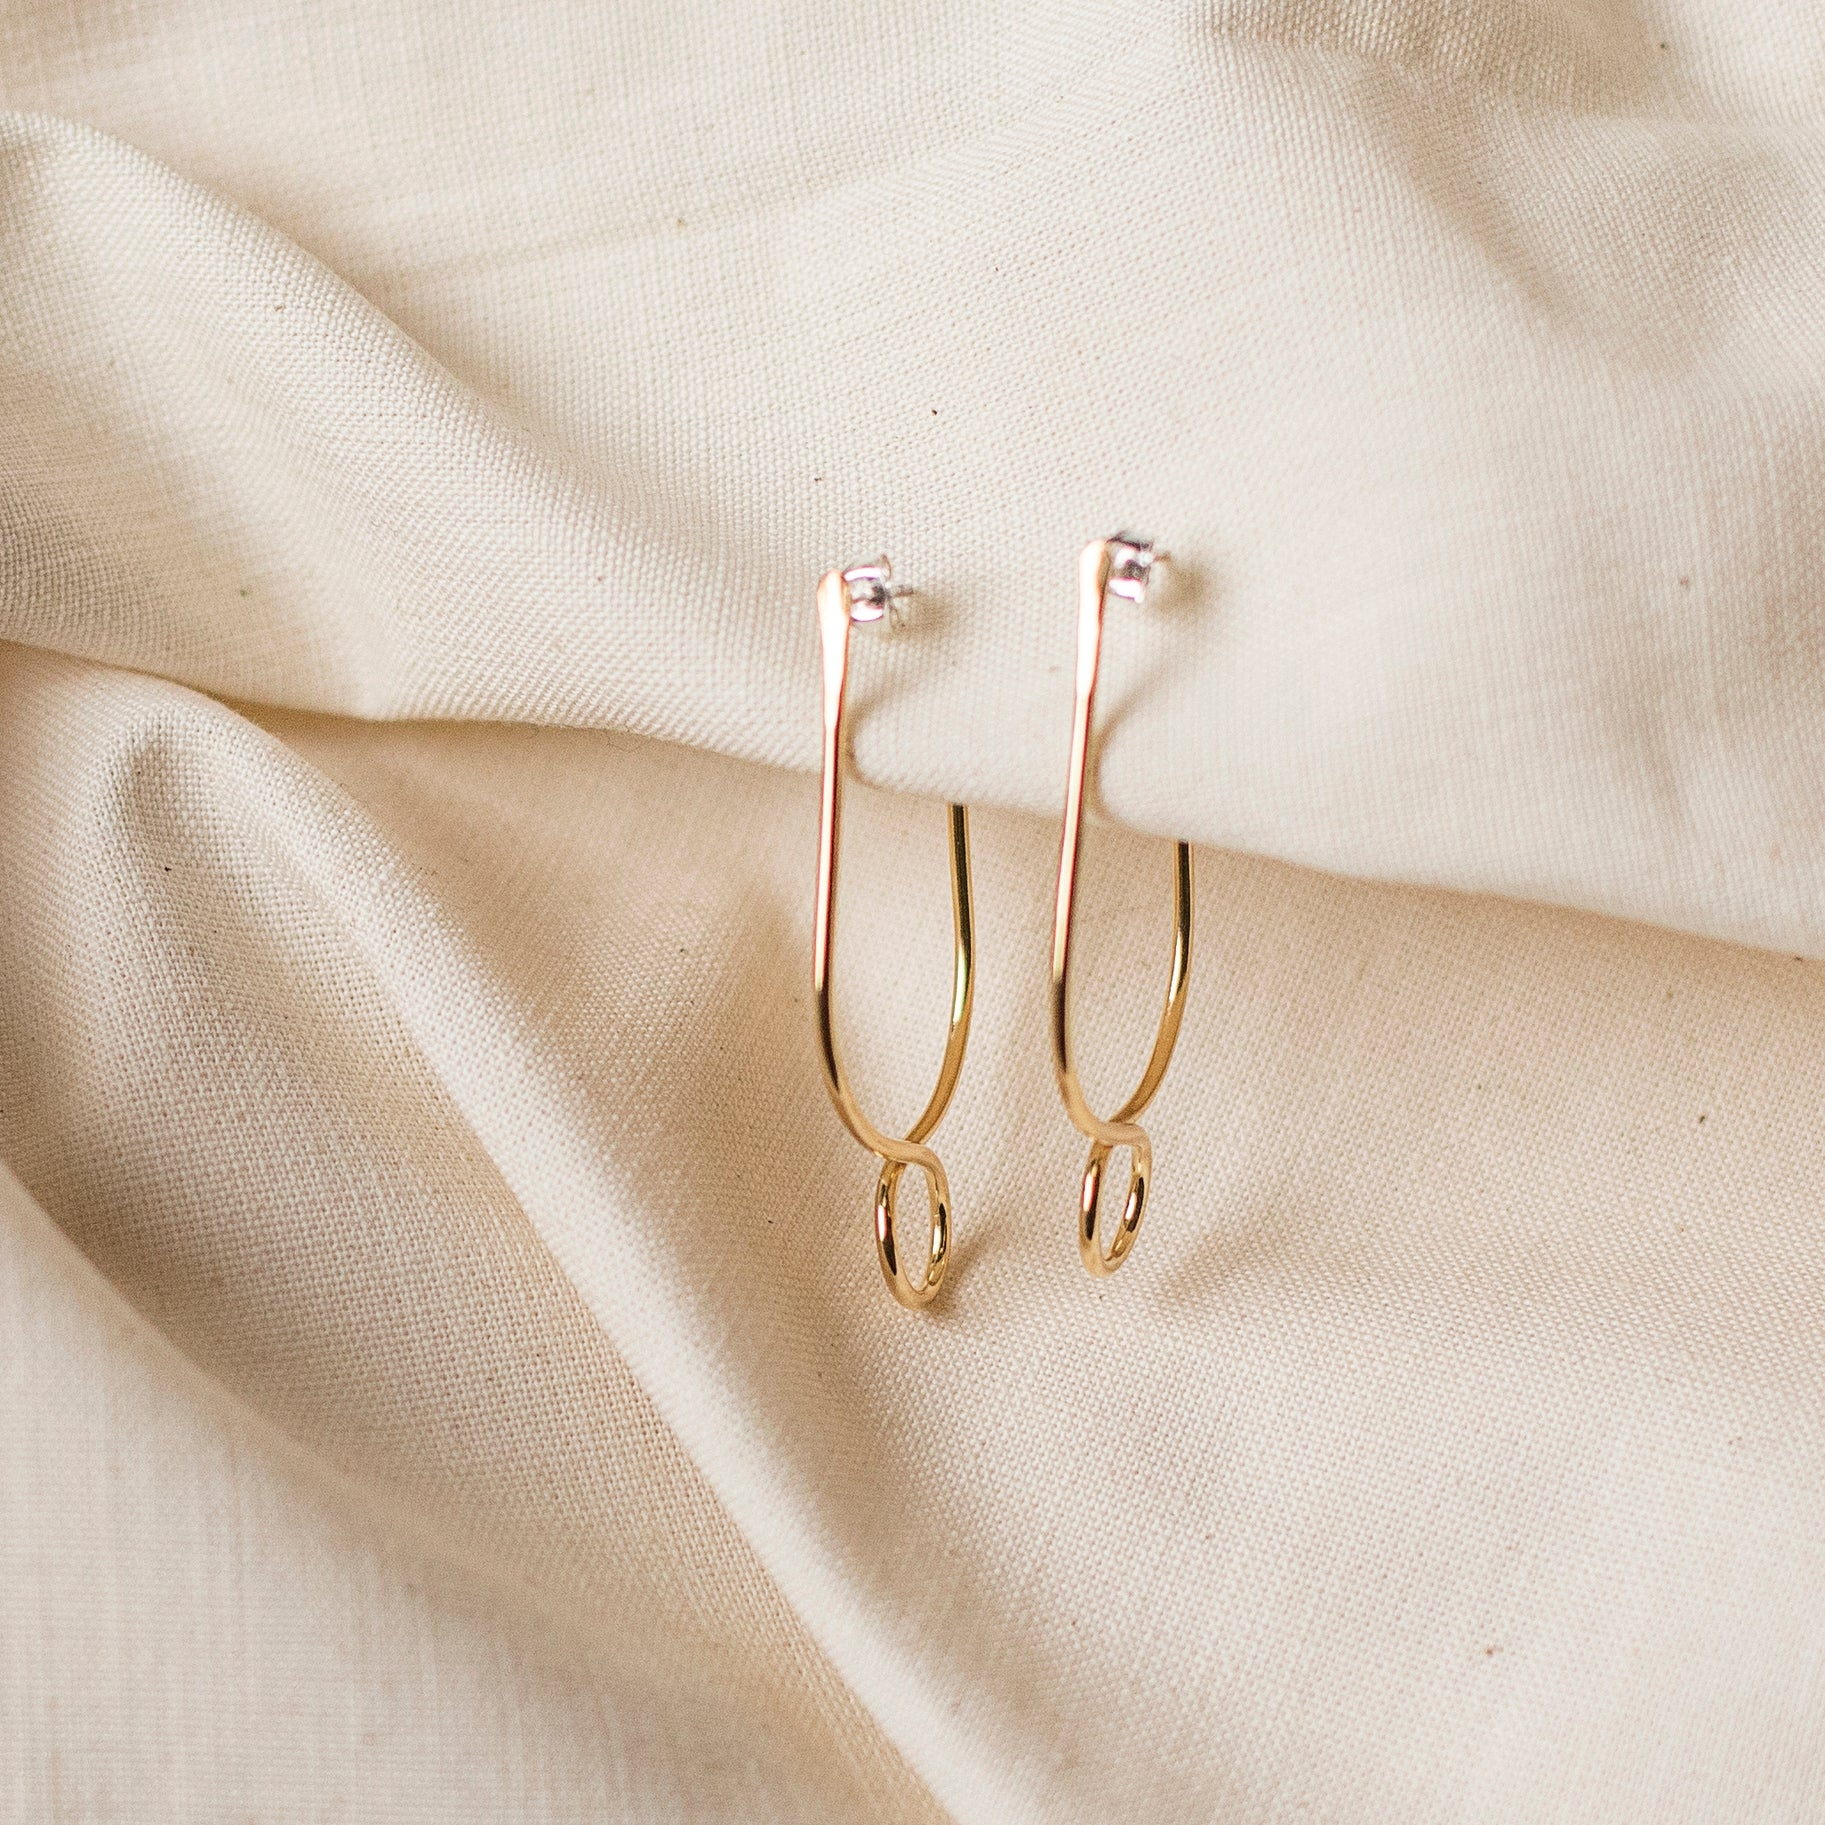 The Dune Loop Earrings by Cire' Alexandria